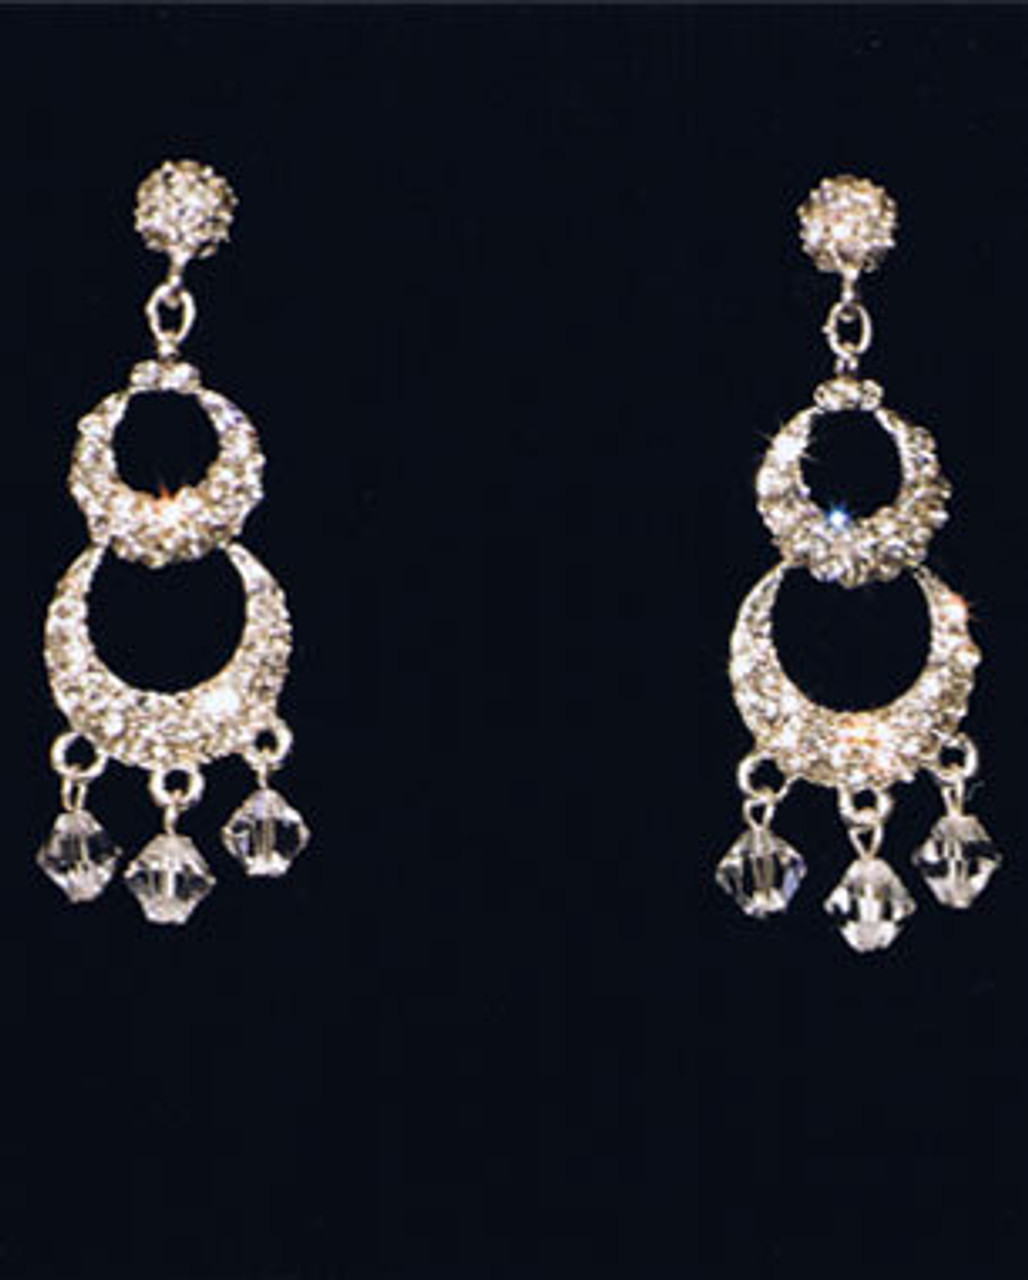 Bel aire bridal earrings ea202 wedding jewelry for Bel aire bridal jewelry